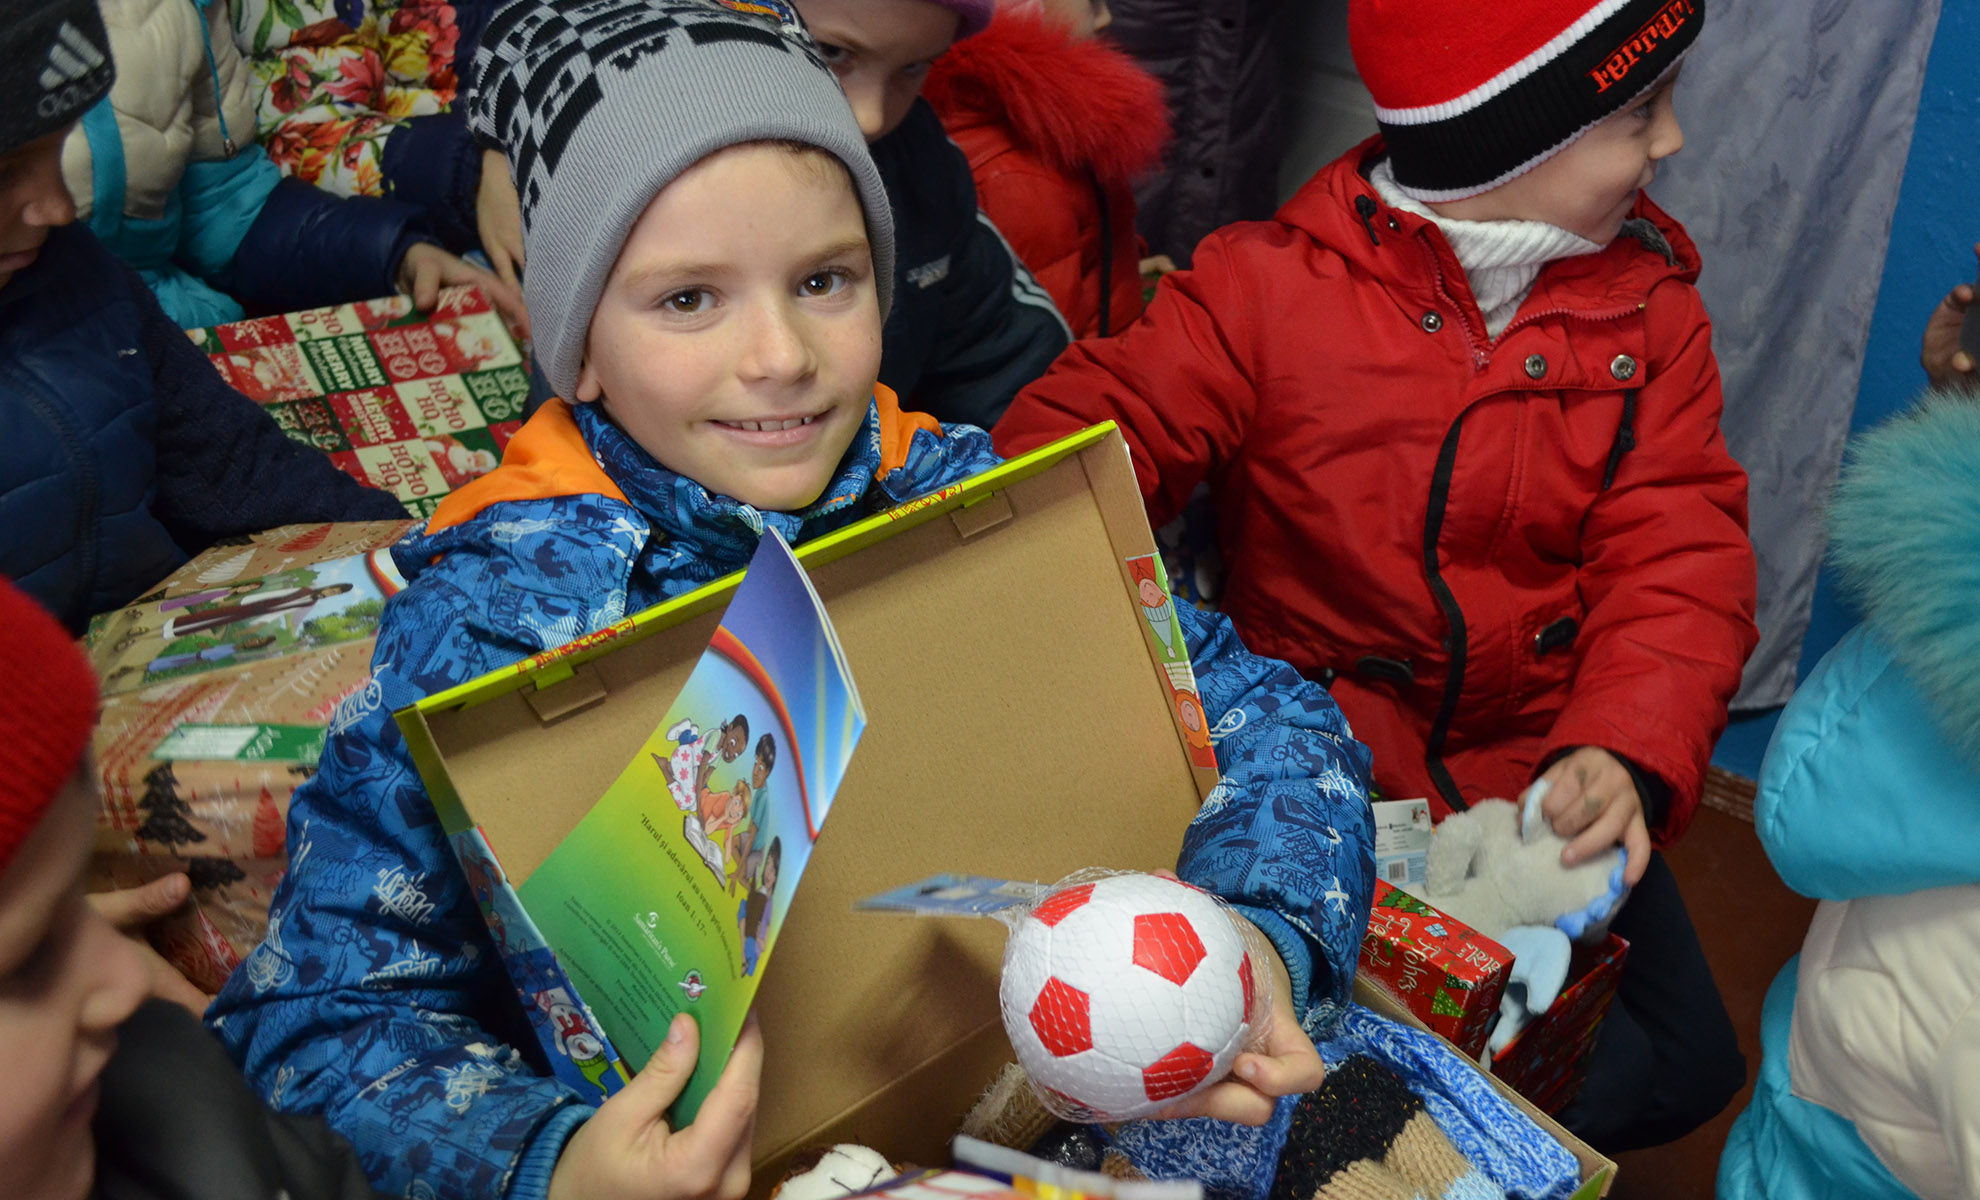 Header image, Boy holding shoebox gift with football